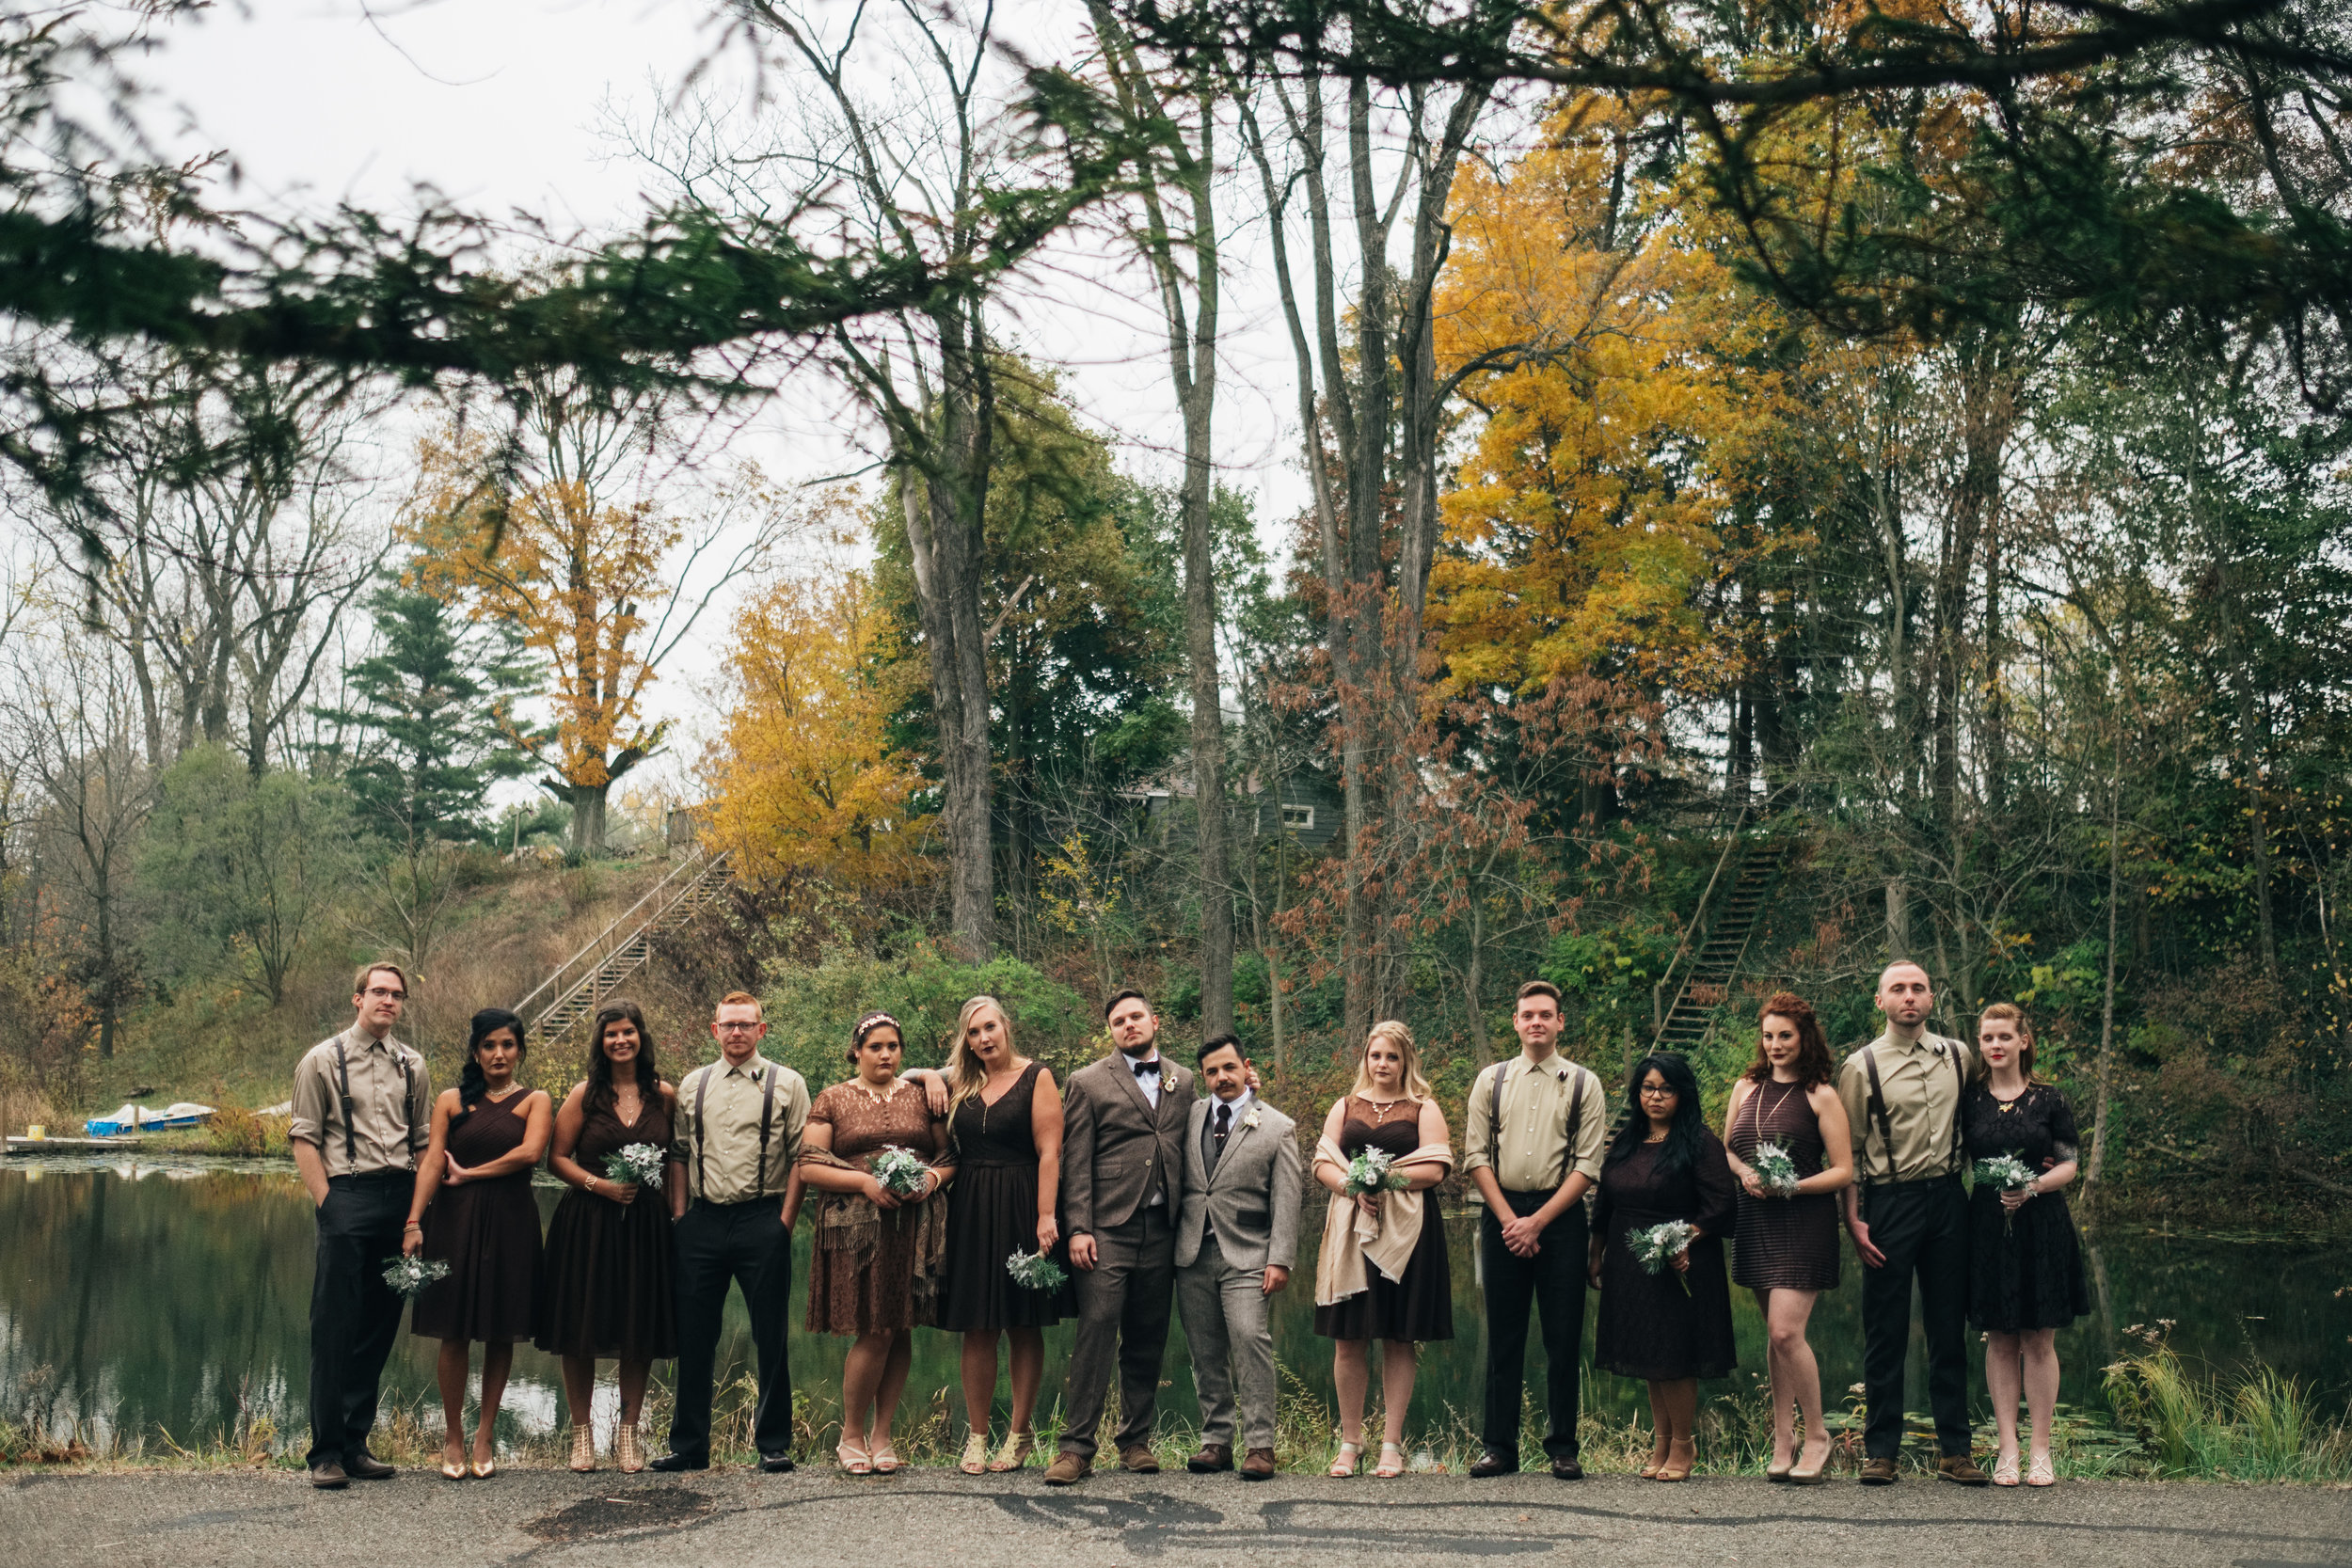 Bridal Party at Same Sex Wedding in Michigan with Toledo Wedding Photographers